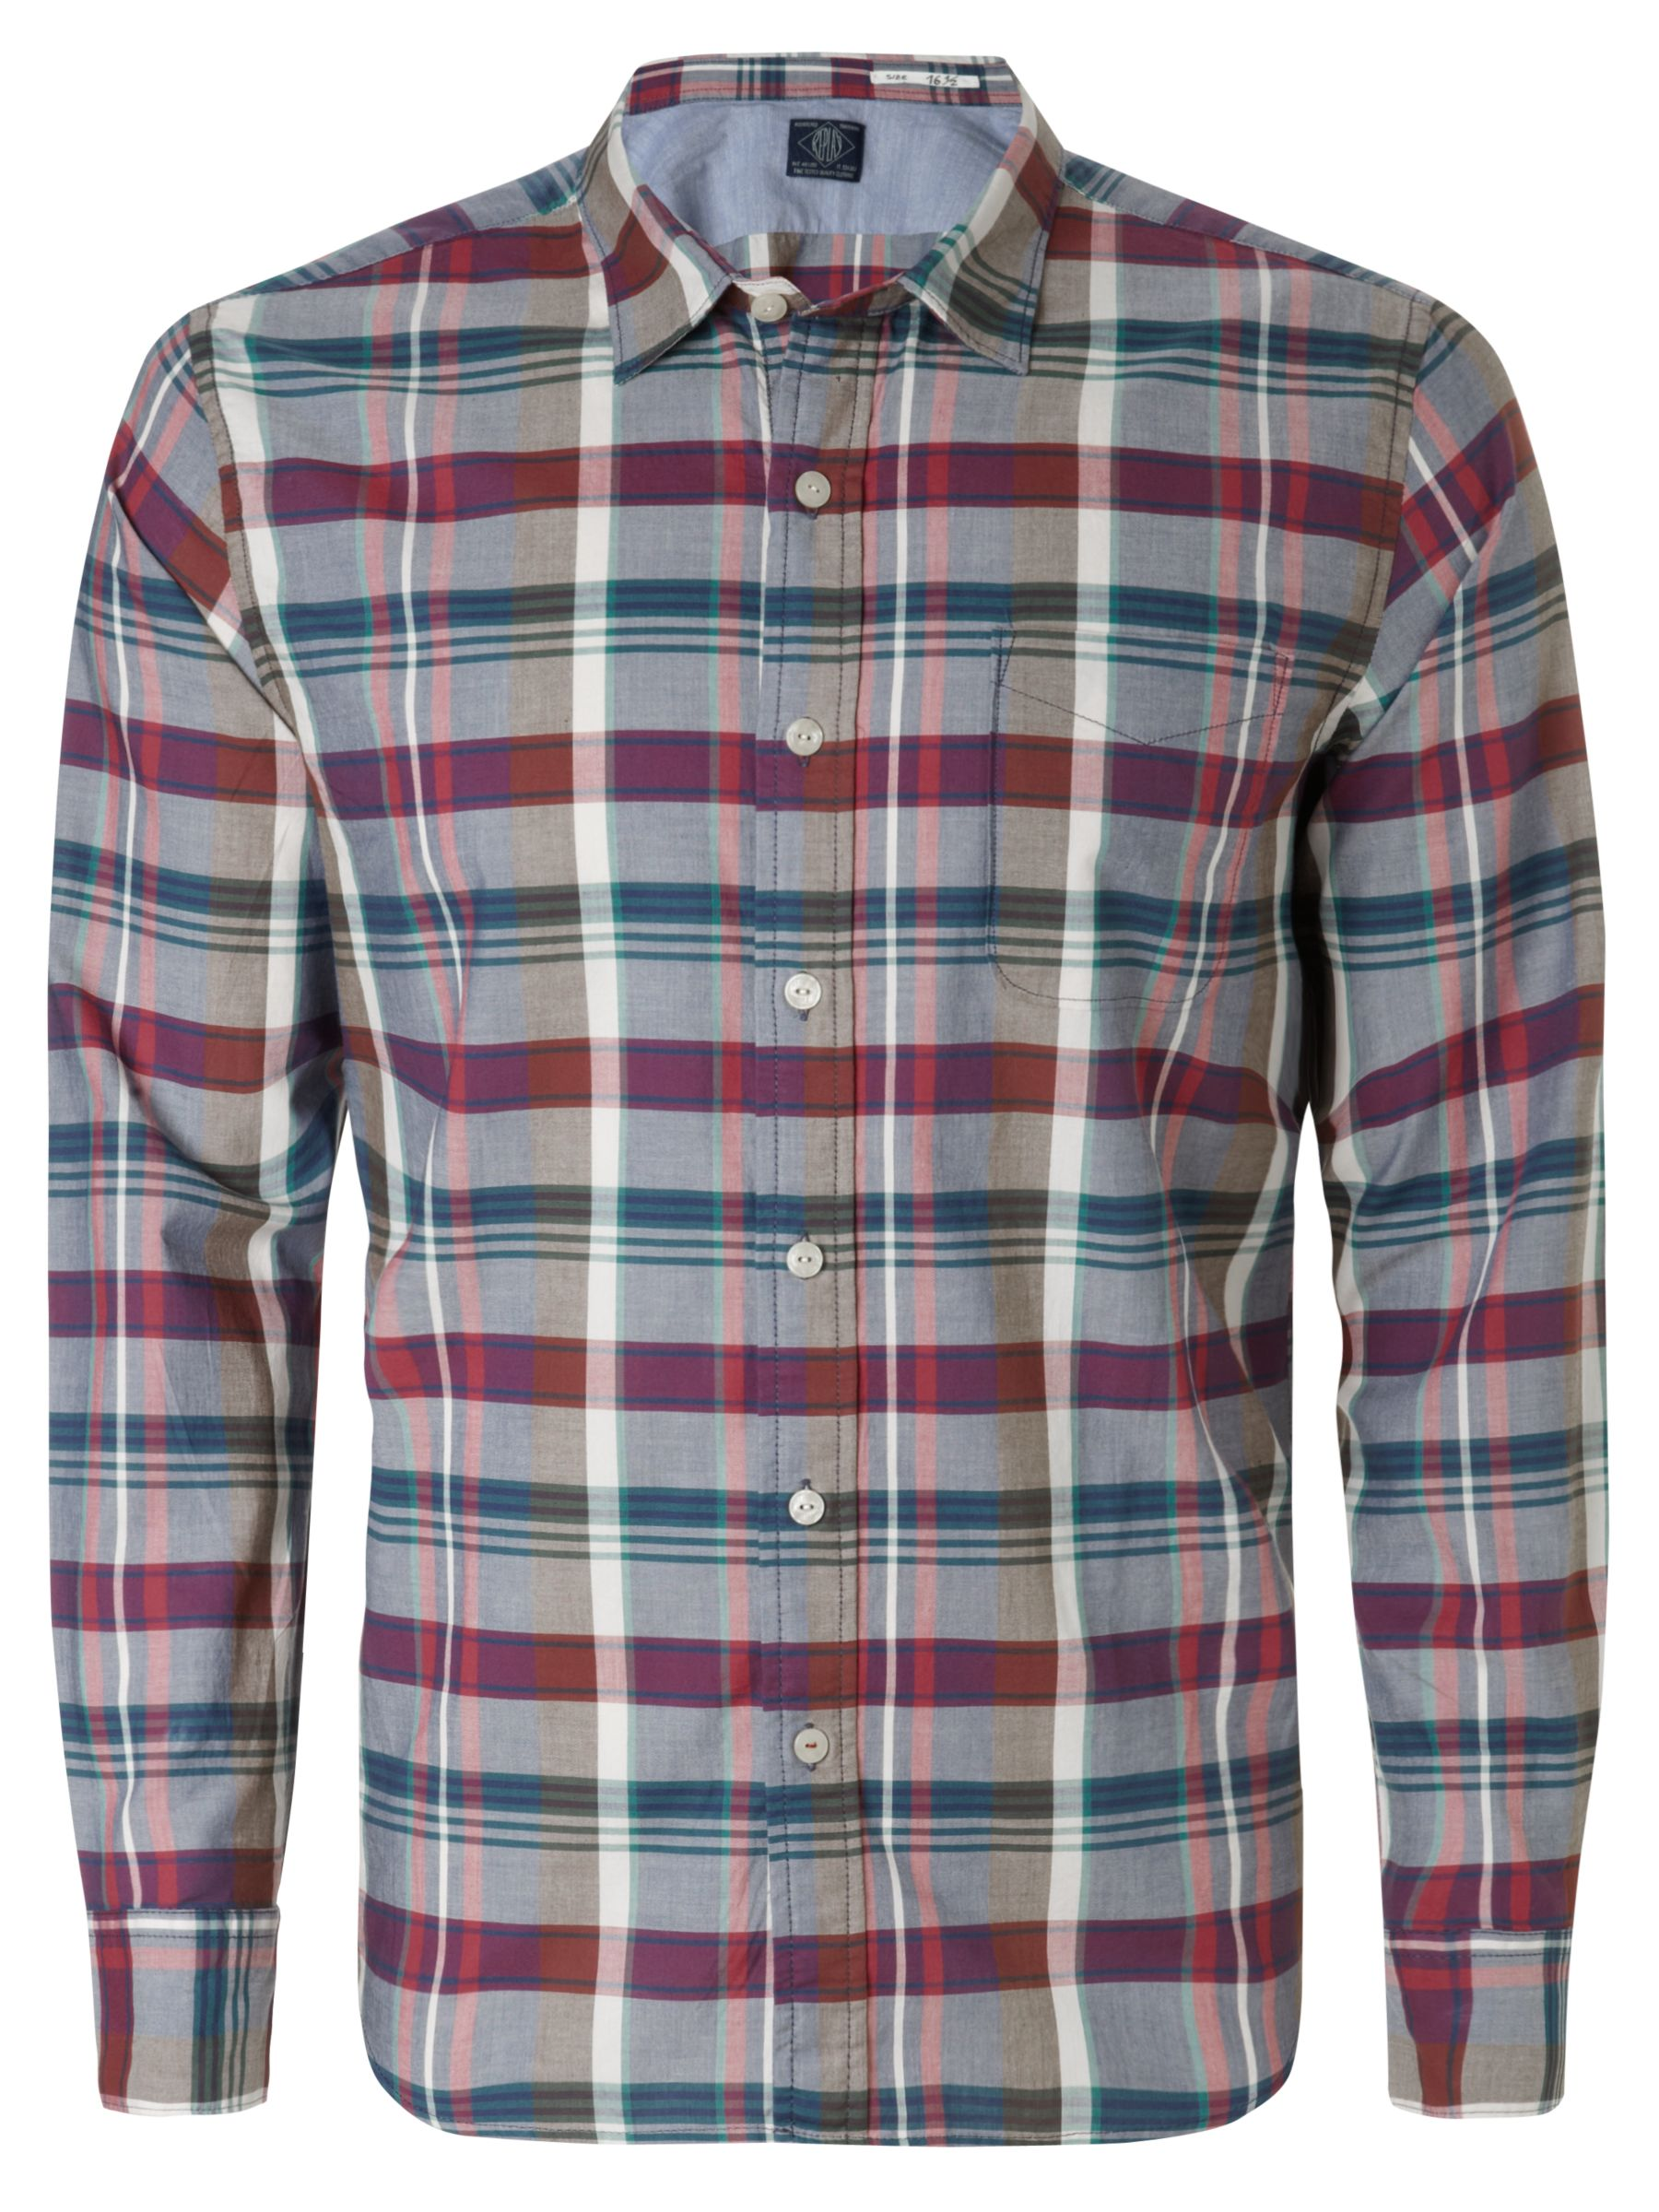 Replay Large Check Long Sleeve Shirt RedBlue